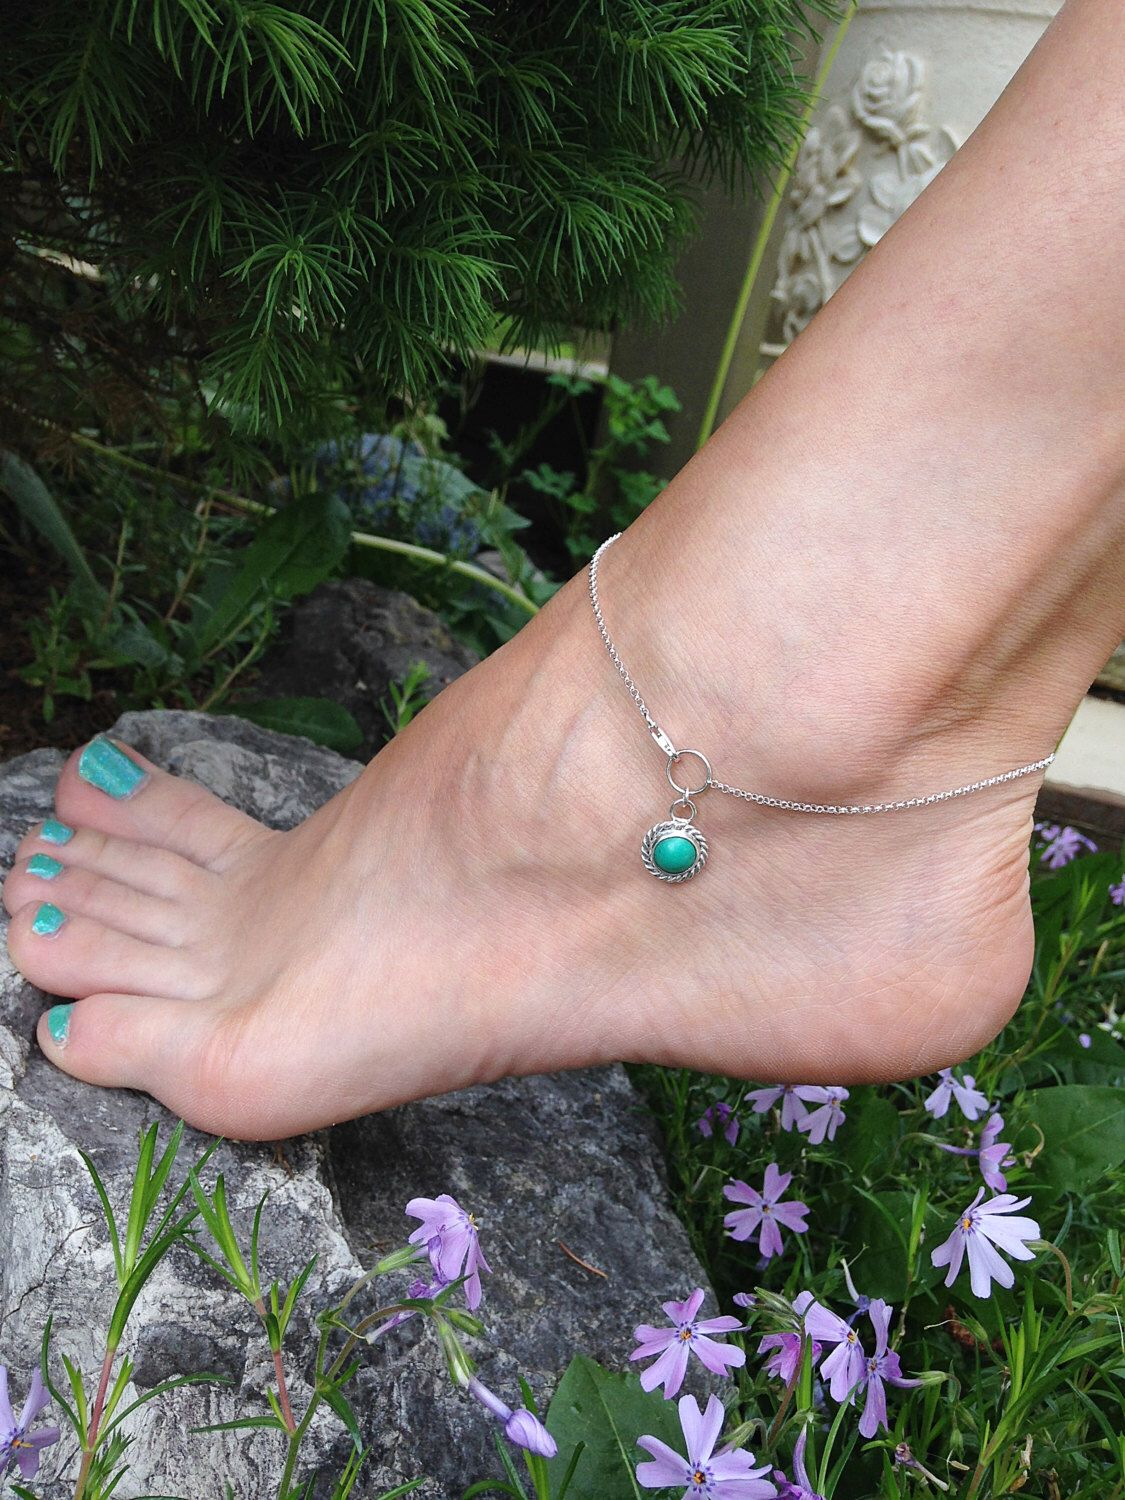 beach and jewelry silver ankle sterling turquoise bracelets snow pin bracelet anklet